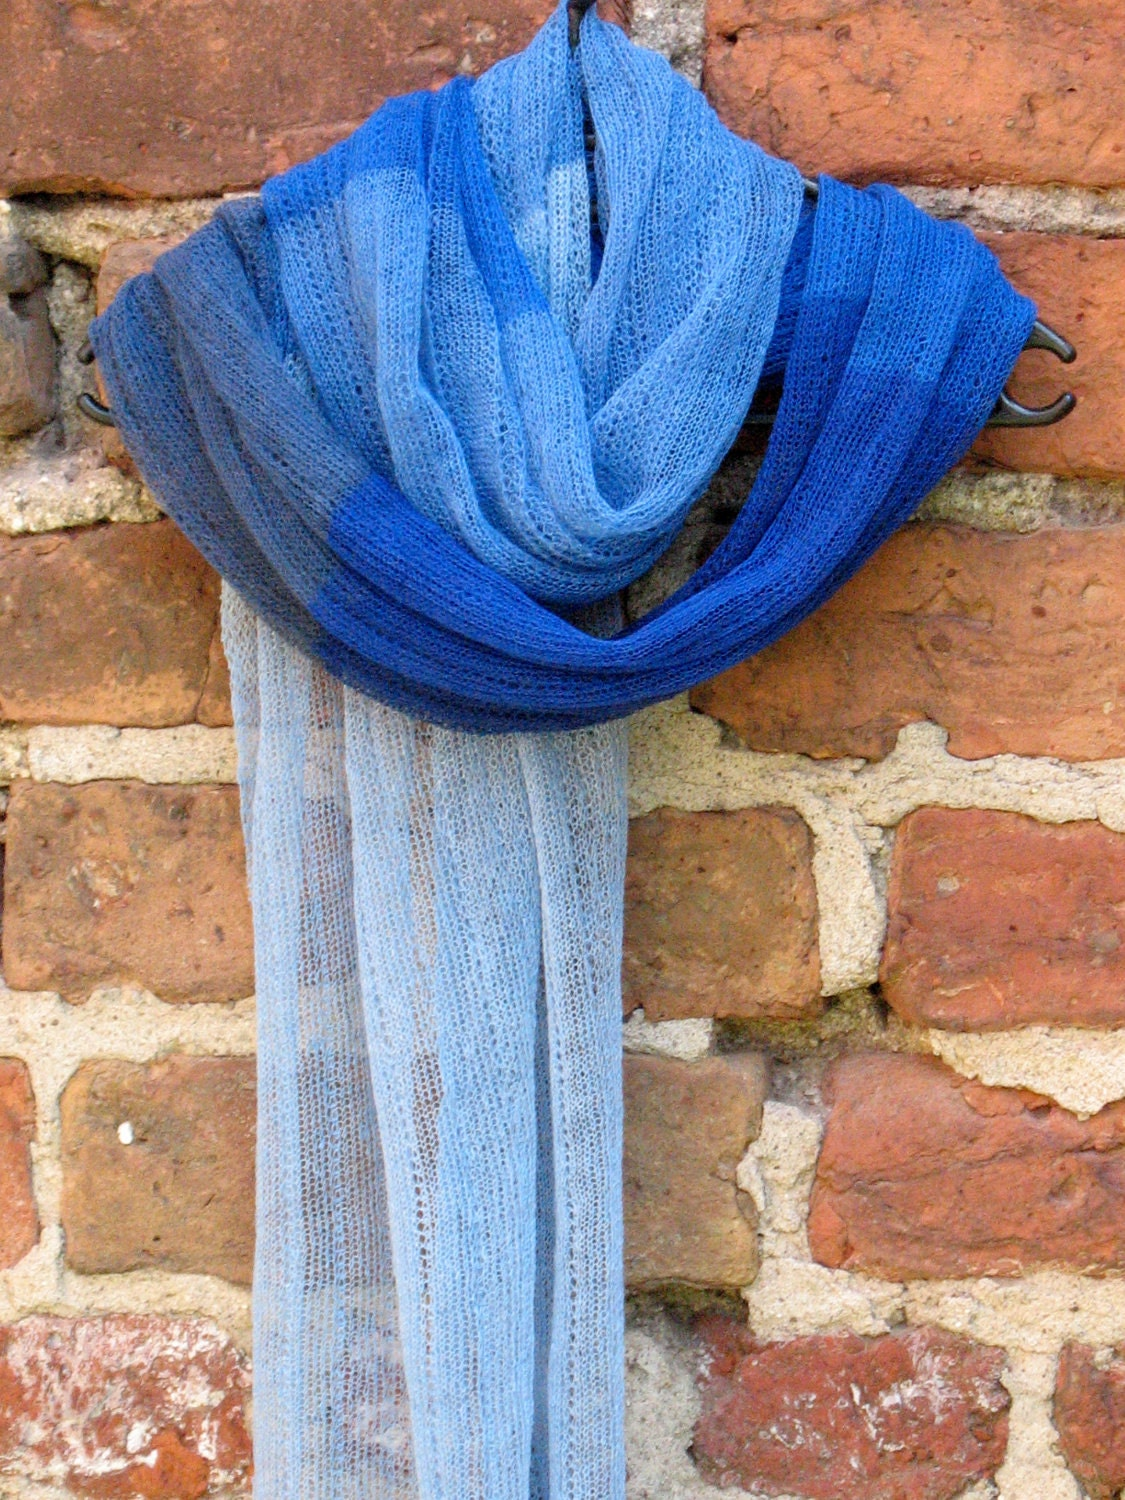 Linen Scarf Shawl Wrap Stole azure cornflower blue - Multicolored, Light, Transparent - Initasworks